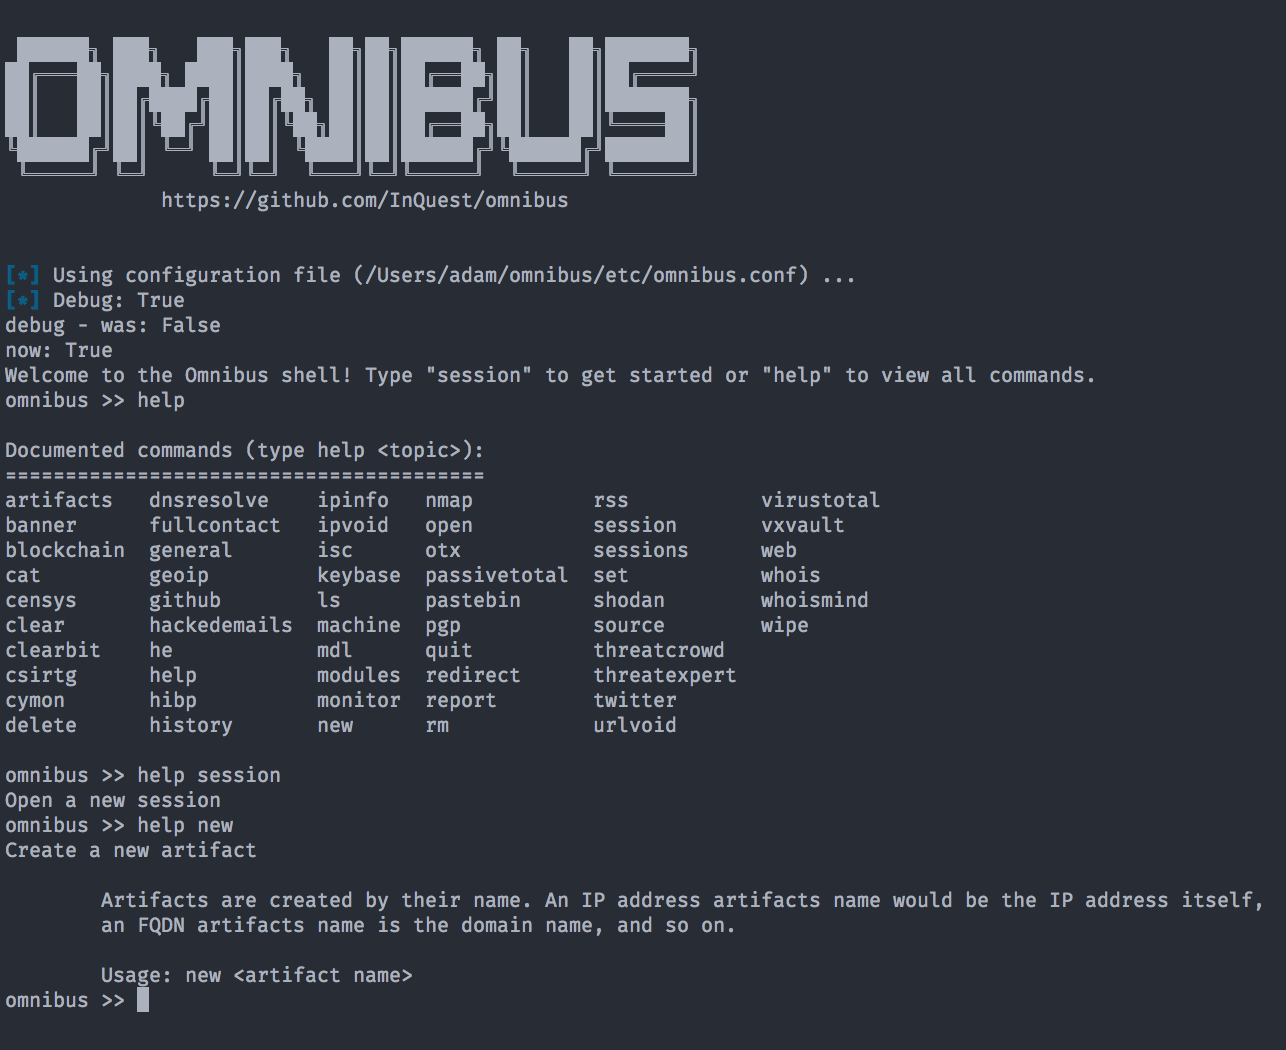 Omnibus: Automating OSINT Collection | InQuest